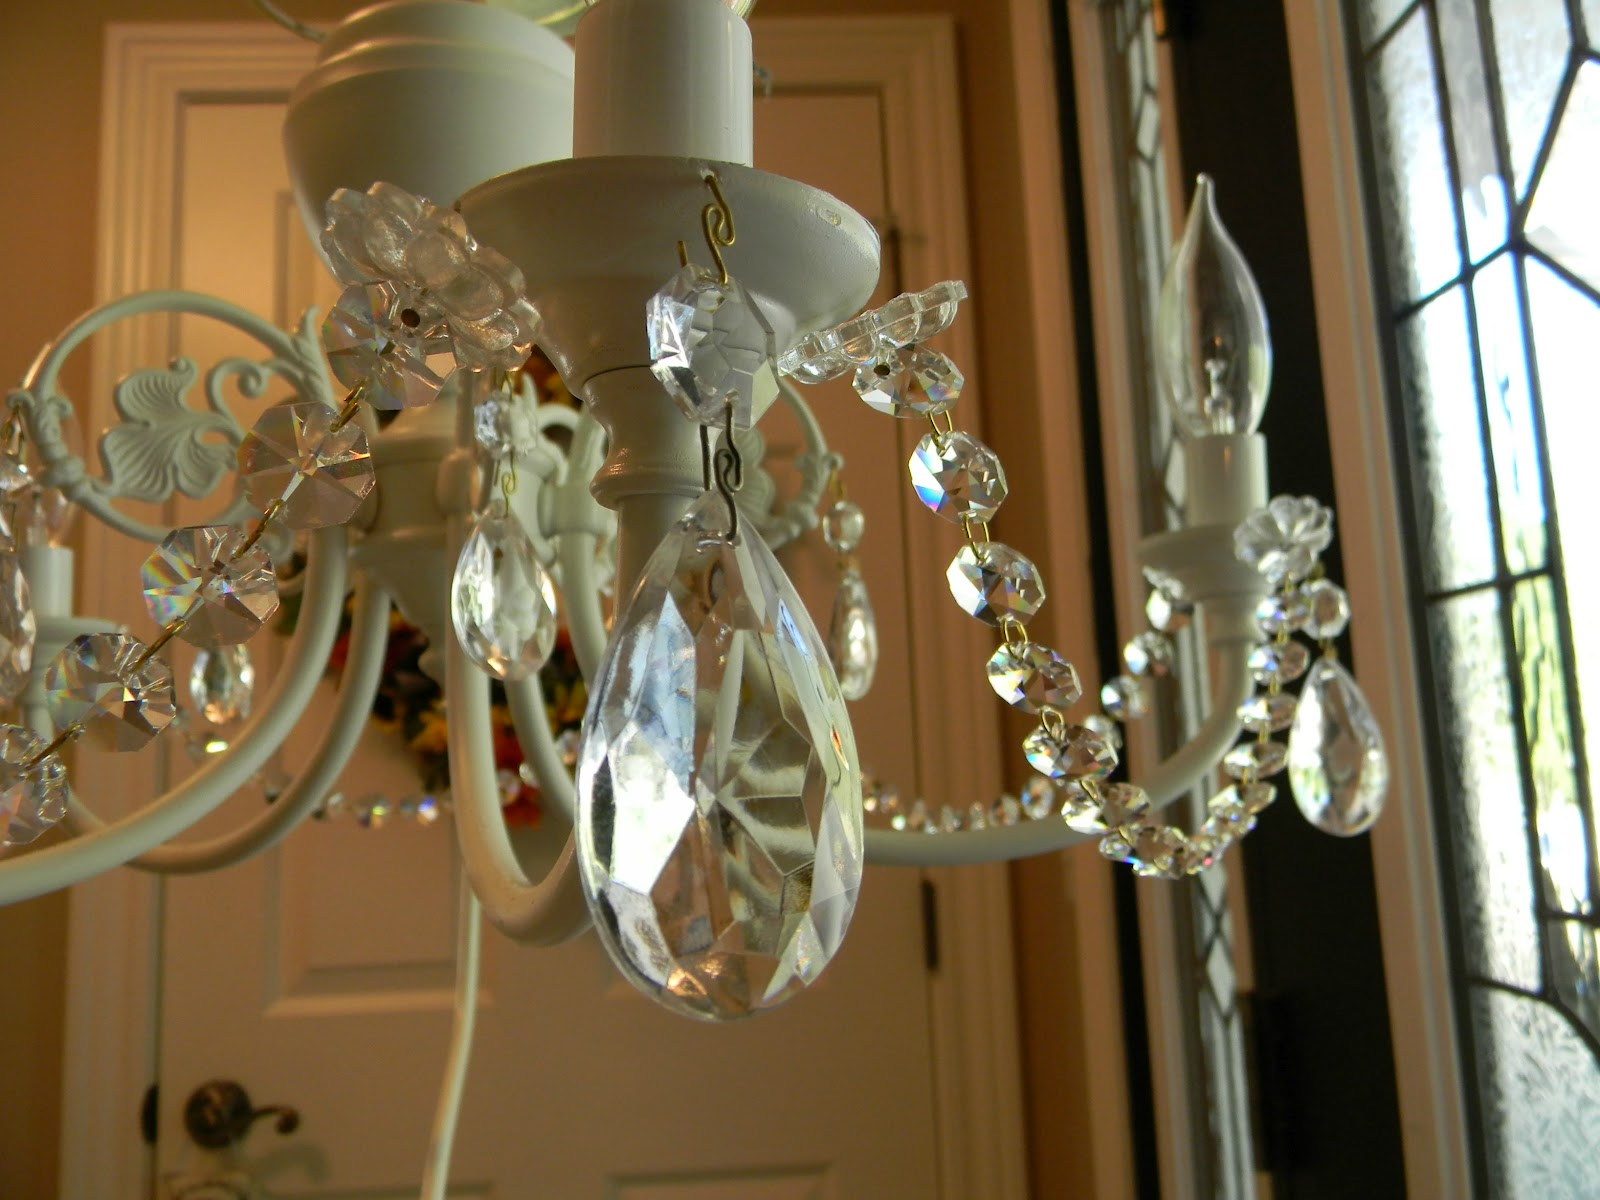 Forever decorating double the chandelier fun double the chandelier fun mozeypictures Gallery